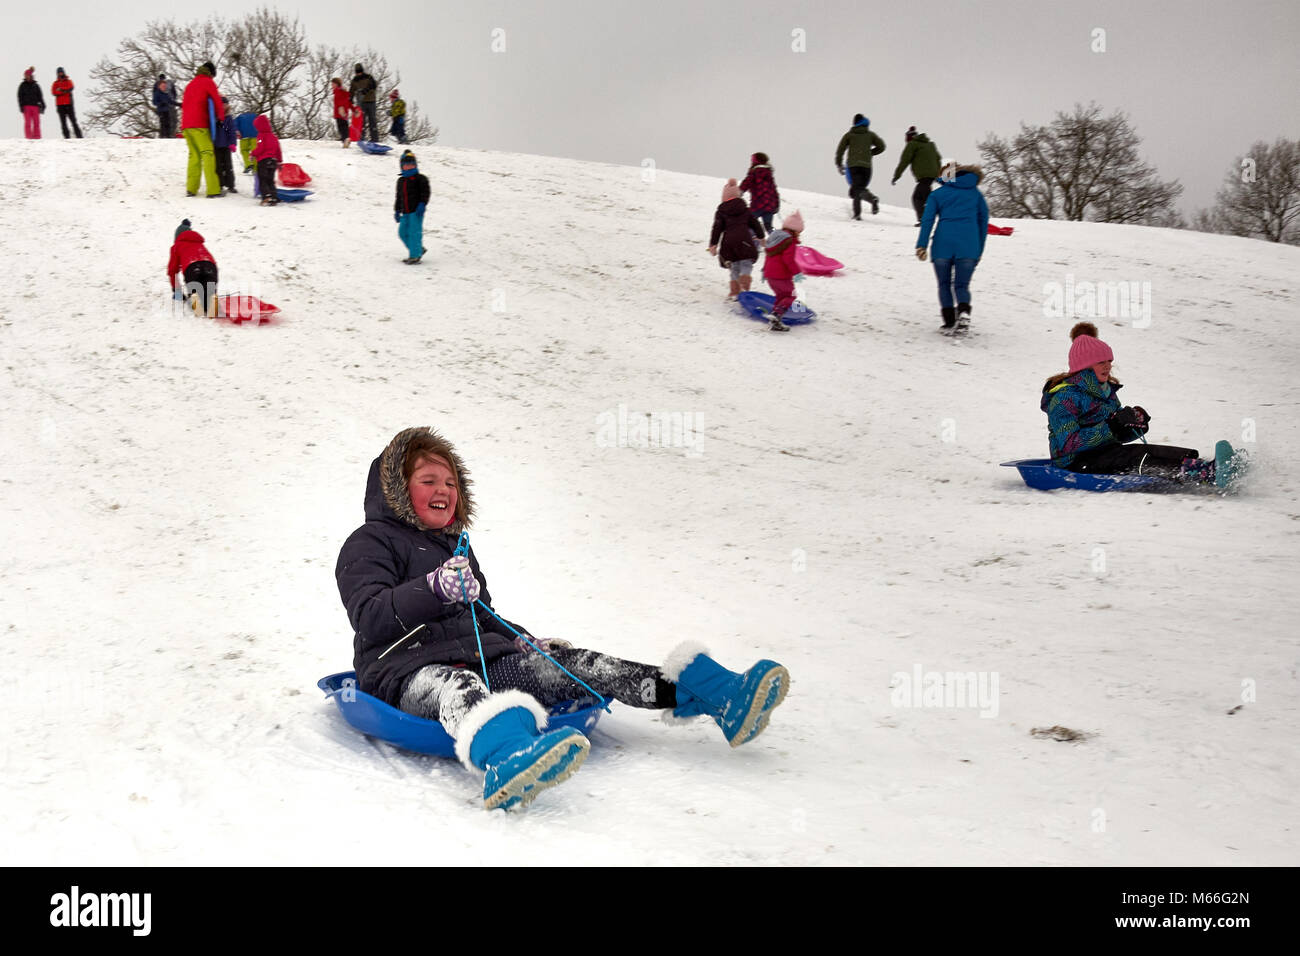 Skipton, North Yorkshire / UK - February 28th 2018: A girl slides down a snow covered hill on a sledge after snow - Stock Image